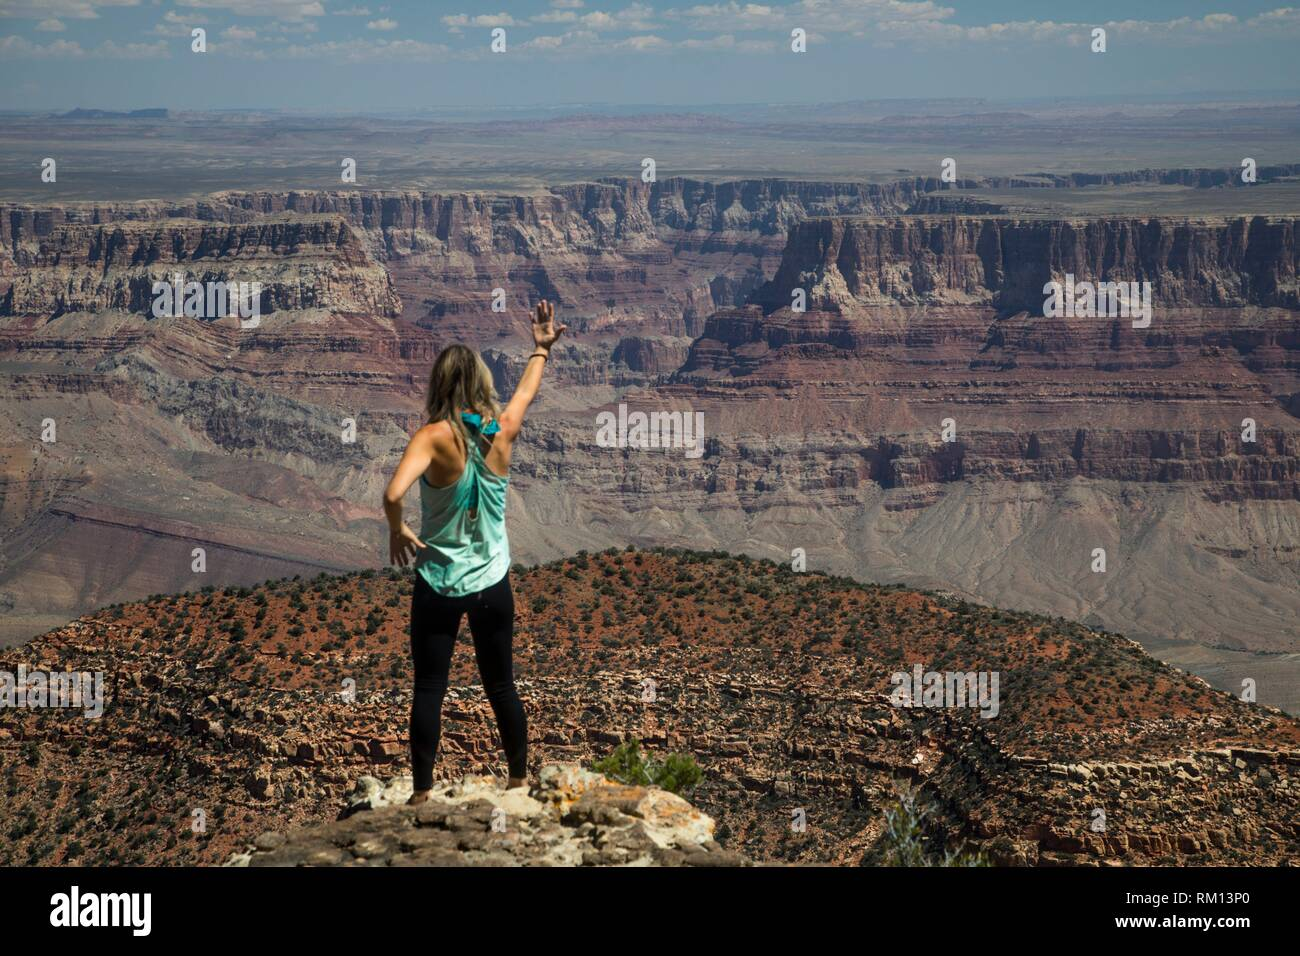 A woman is entranced by the immense beauty of the Grand Canyon at The North Rim, Arizona. - Stock Image